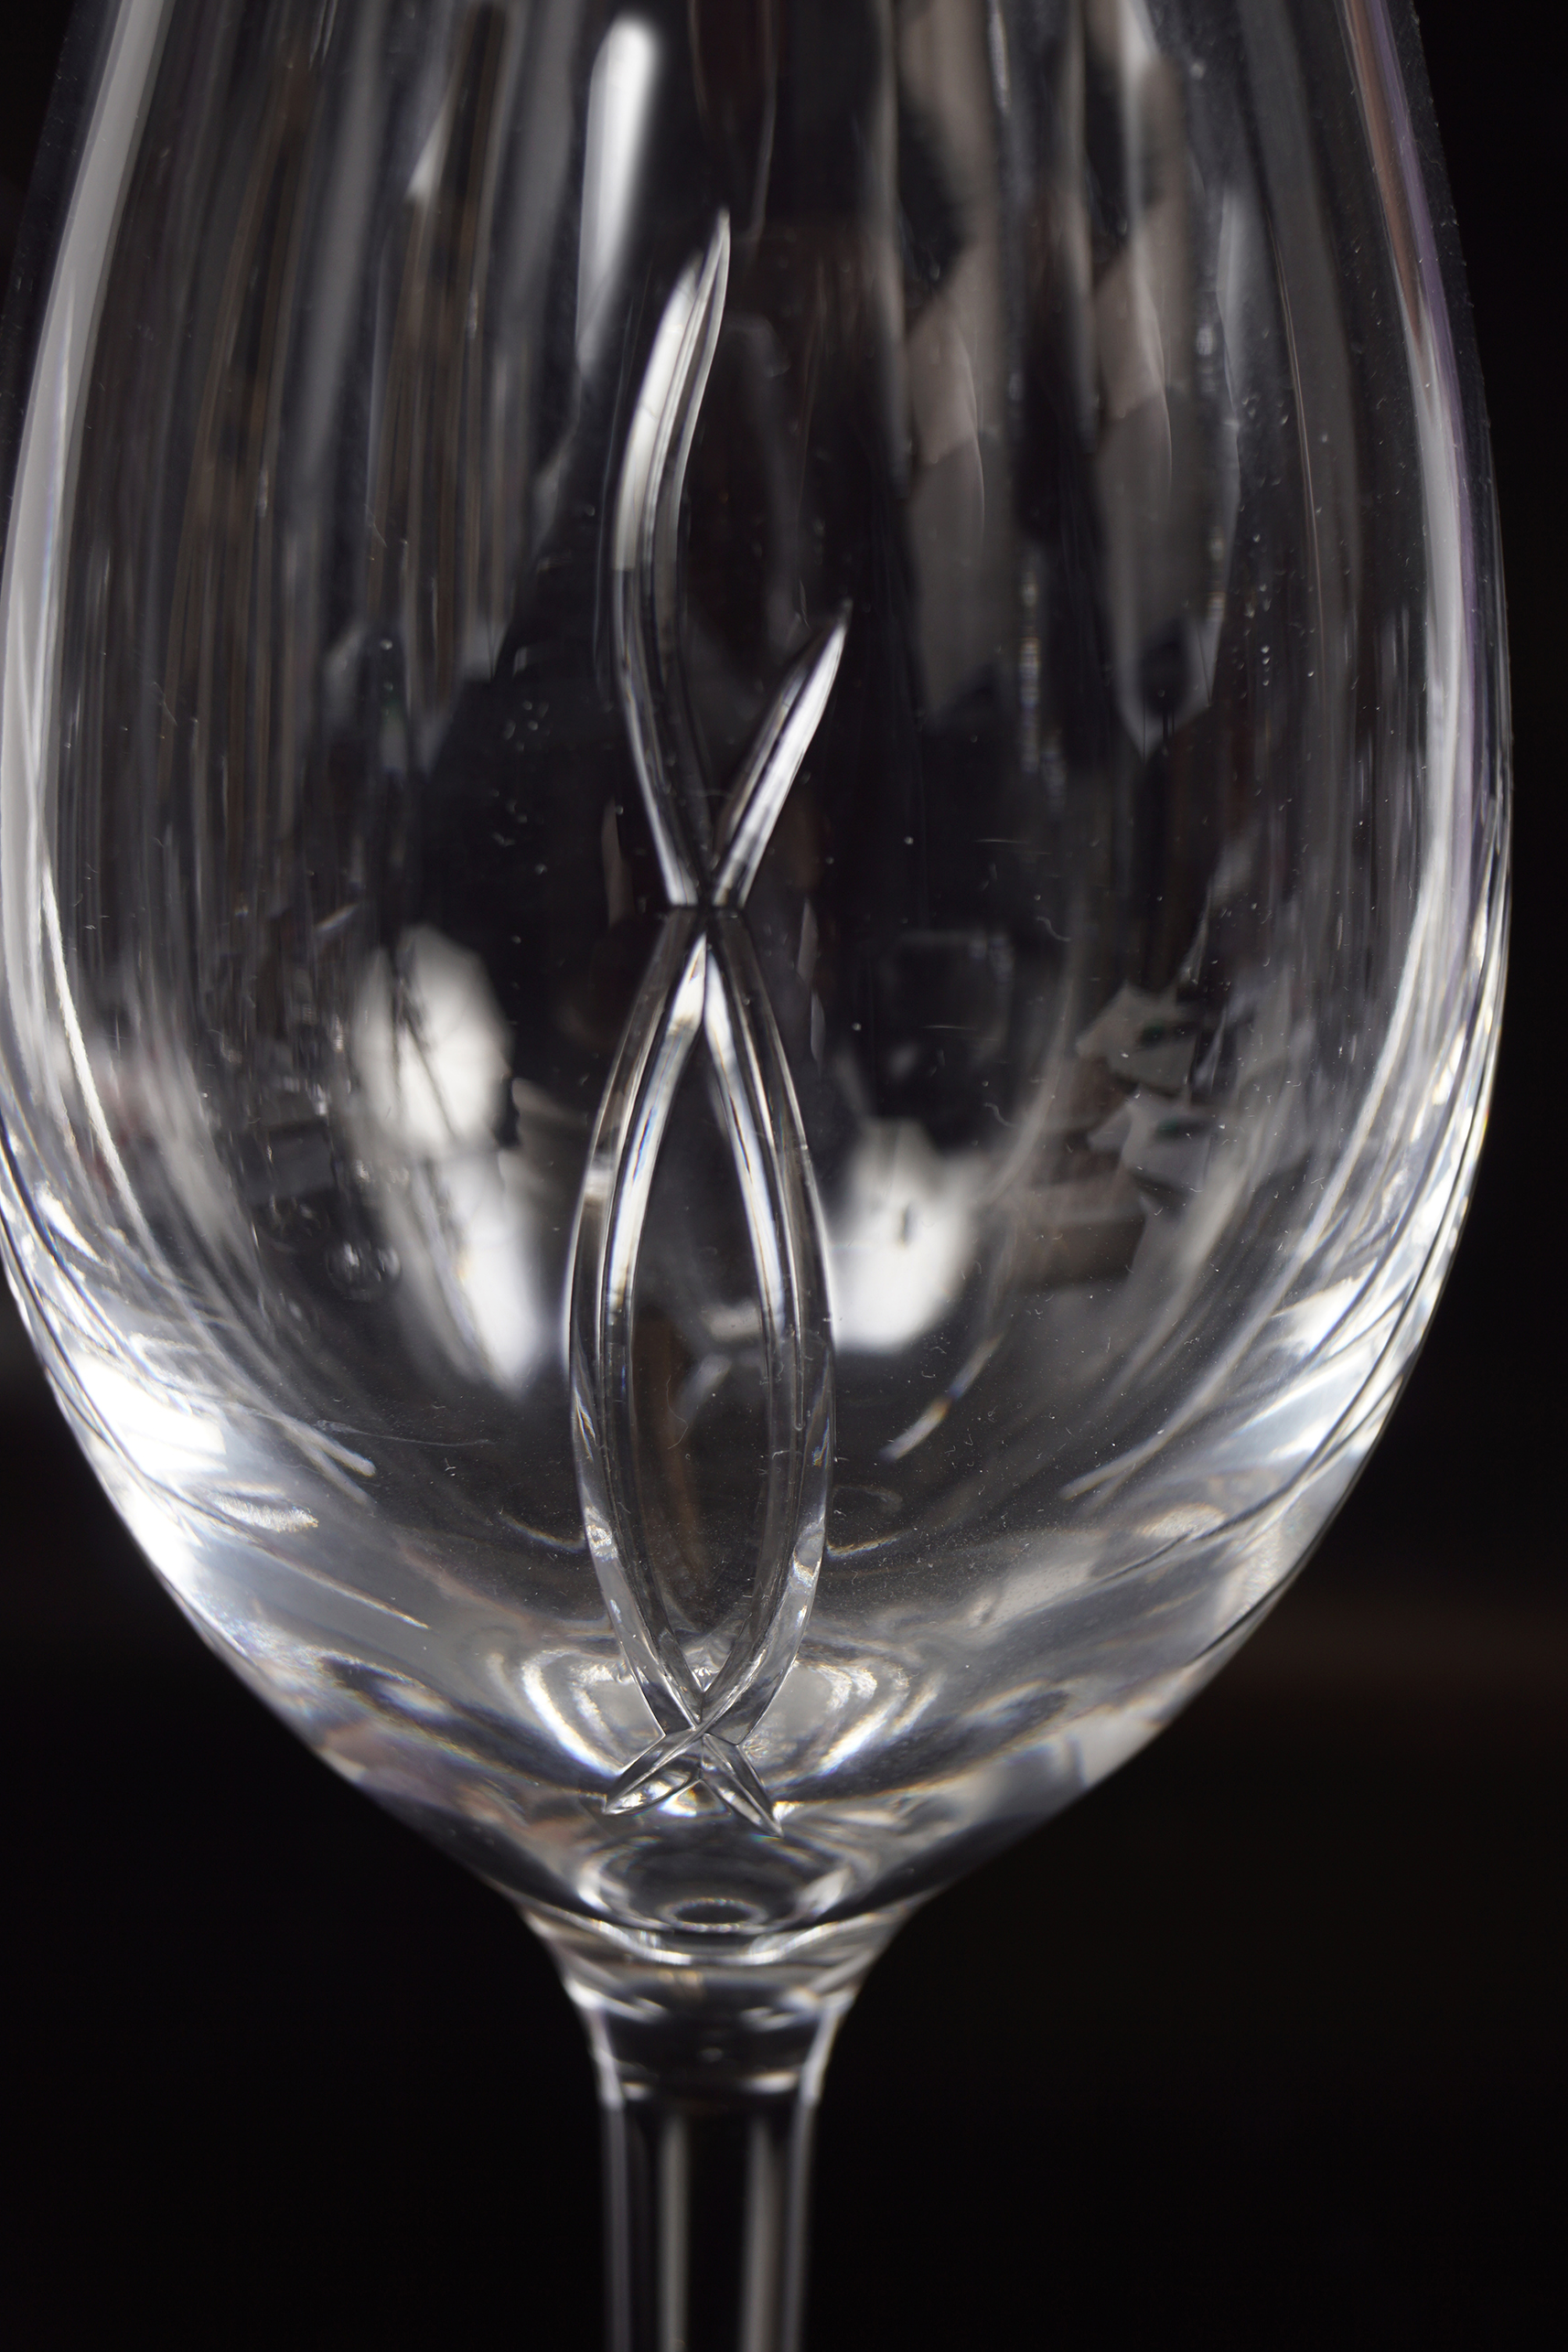 24 WATERFORD CRYSTAL WINE GOBLETS - Image 2 of 3